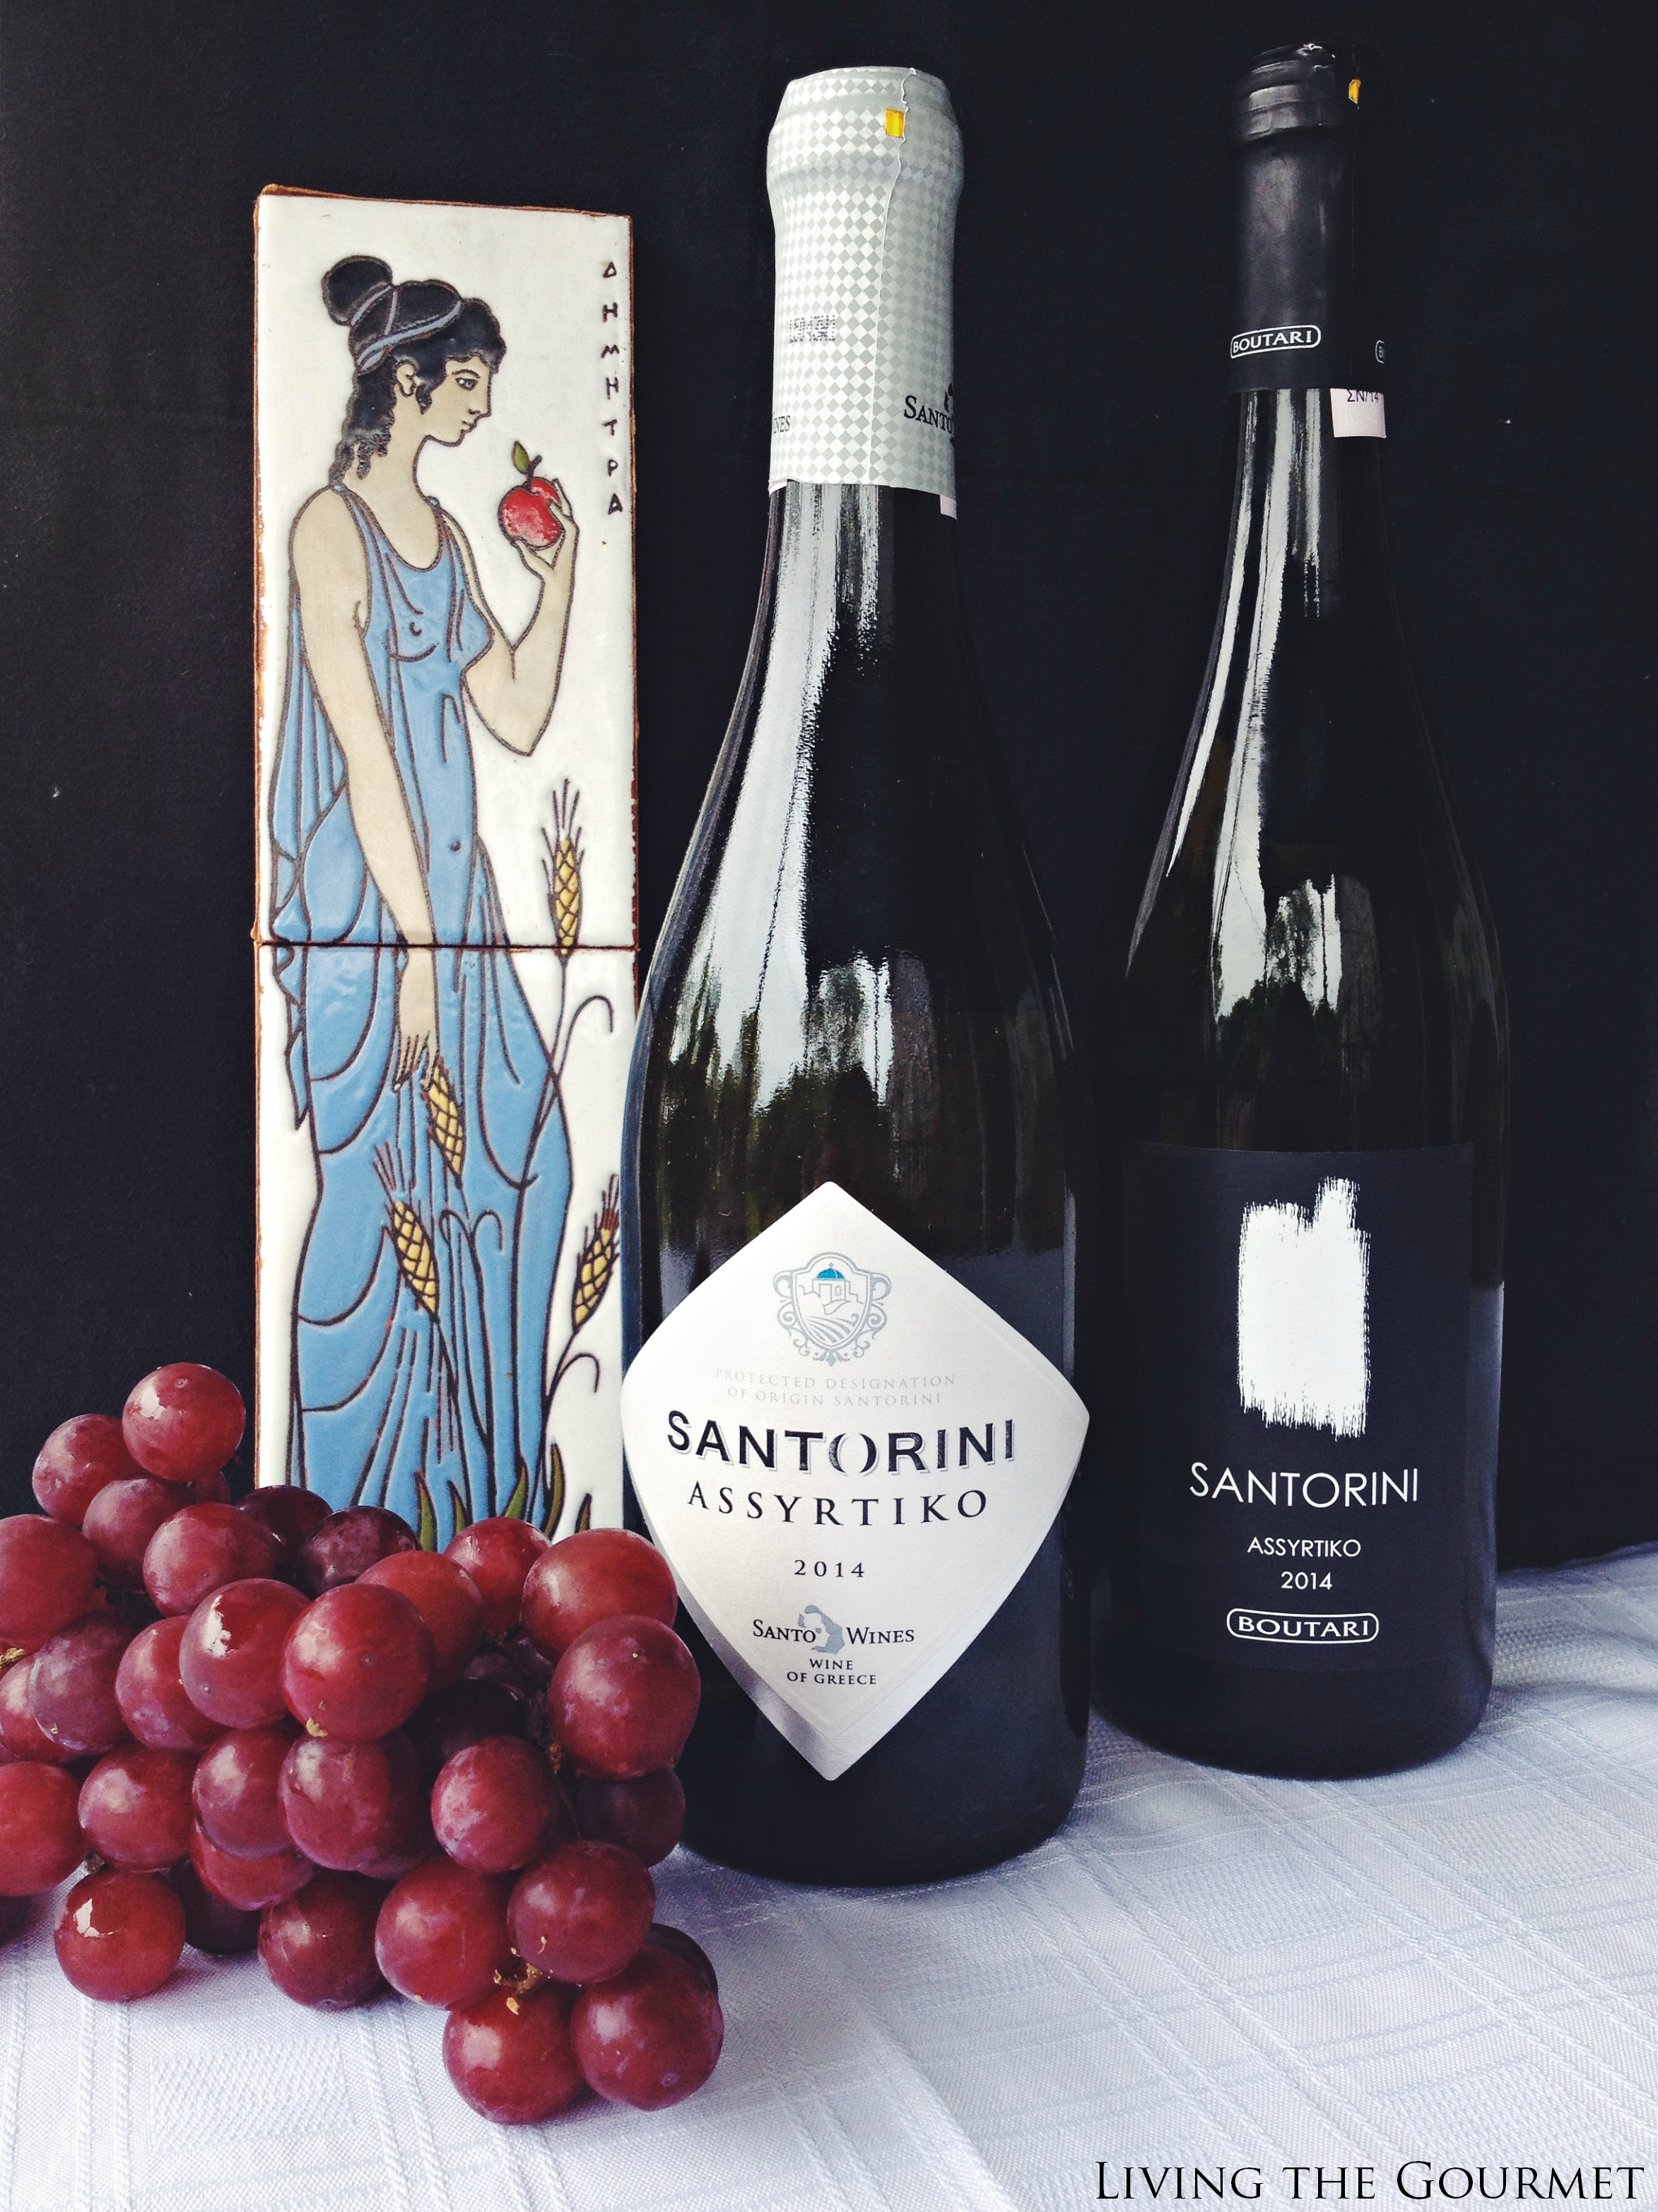 Living the Gourmet: The Wines of Santorini